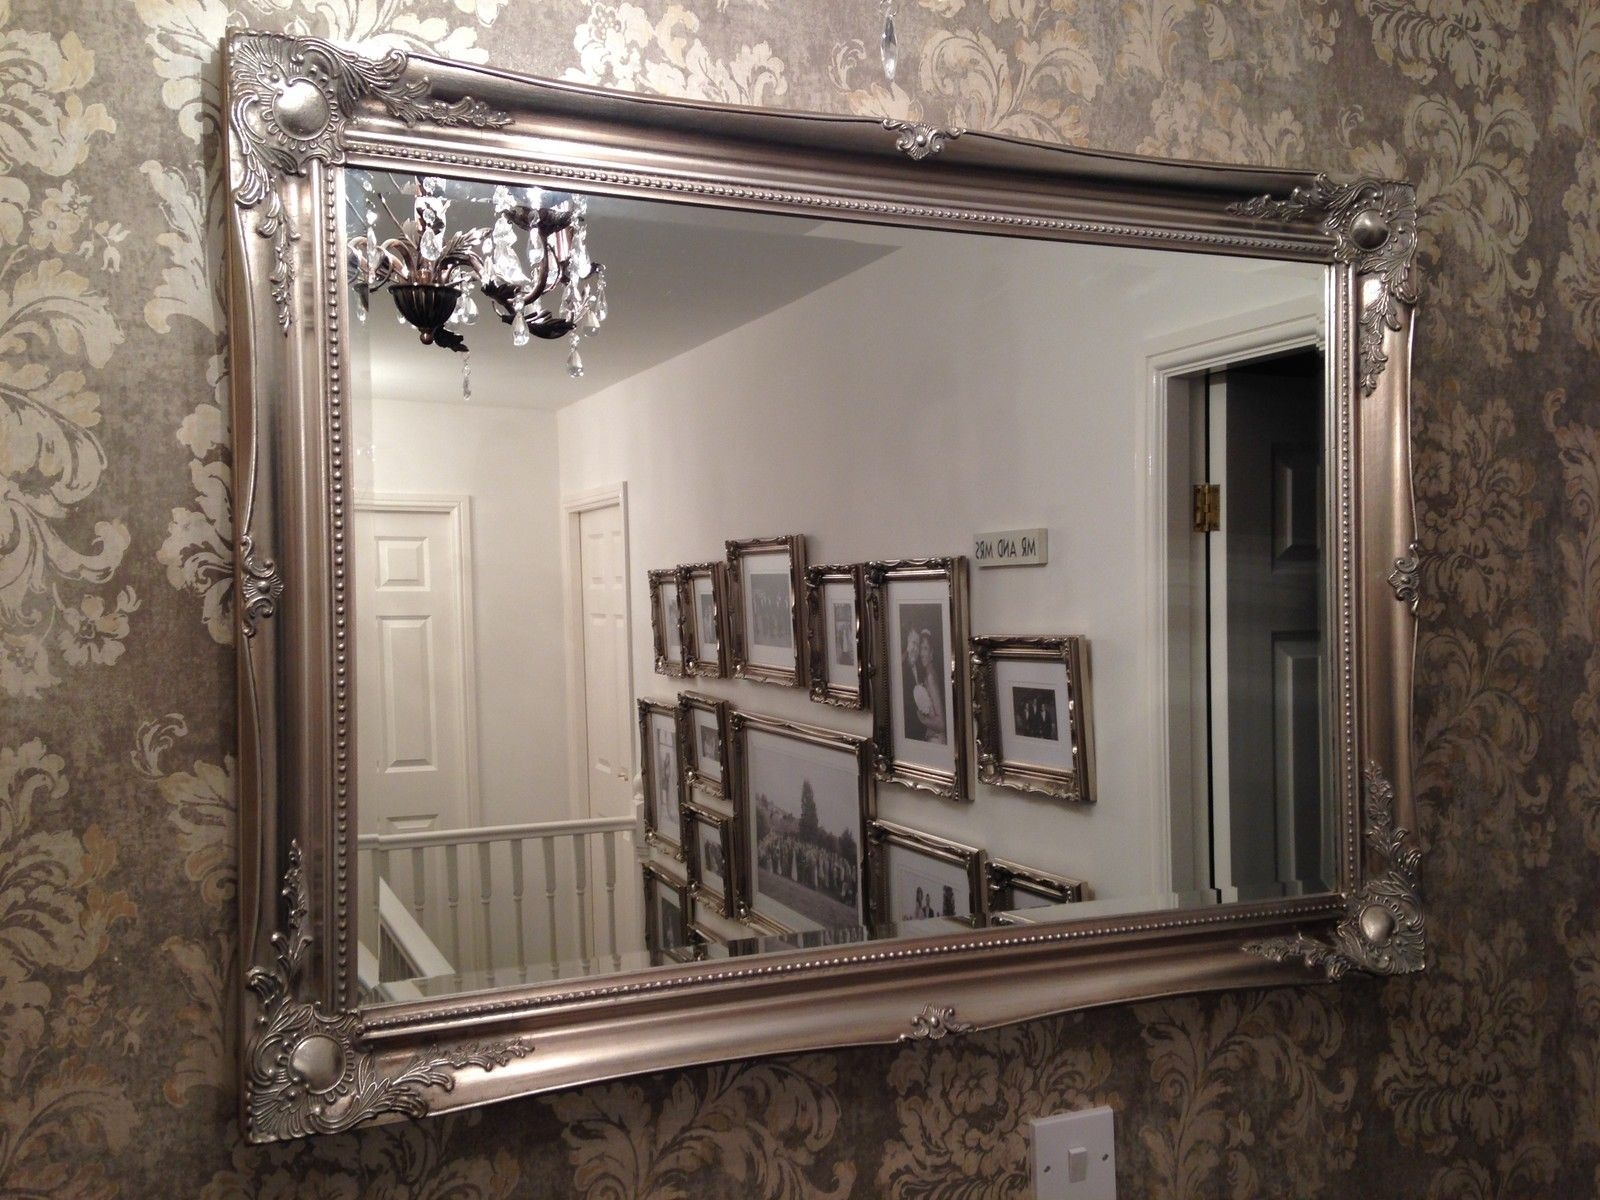 X Large Antique Silver Shab Chic Ornate Decorative Wall Mirror Within Ornate Large Mirrors (Image 15 of 15)